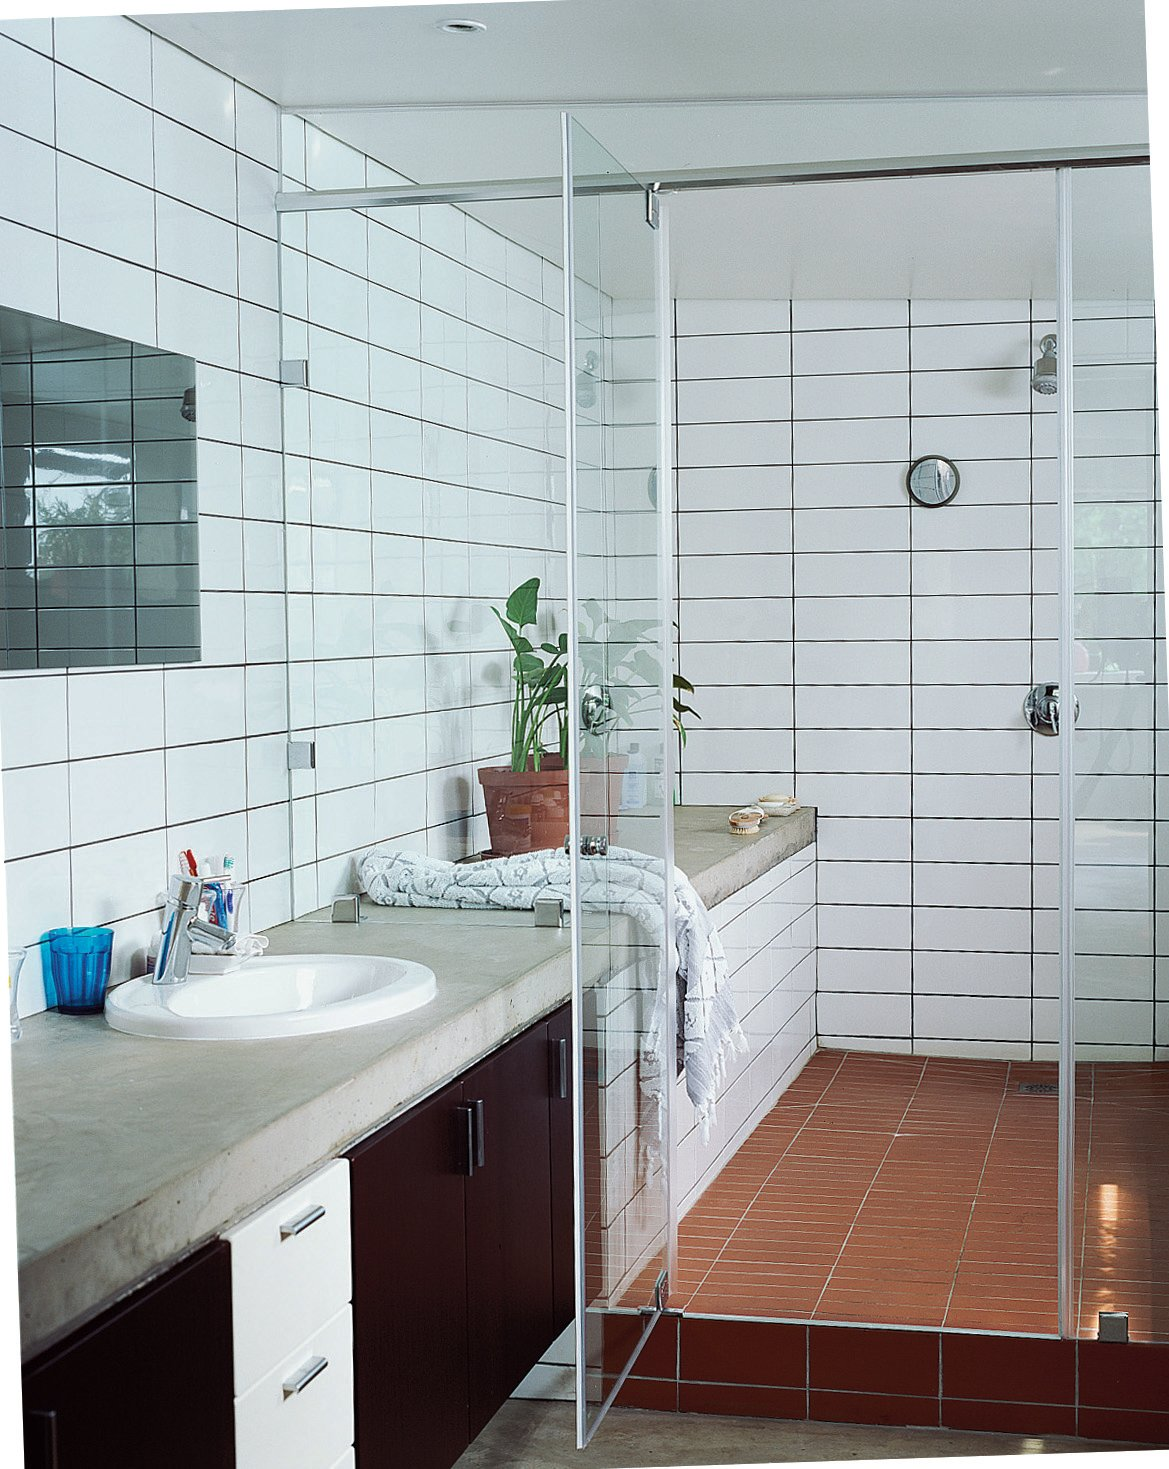 The shower-and-bath-in-one allows for the open feel of the house to translate within the bathroom. Simple concrete slabs function as countertops with inexpensive tiles laid floor to ceiling.  Photo 7 of 10 in Katz's Cradle